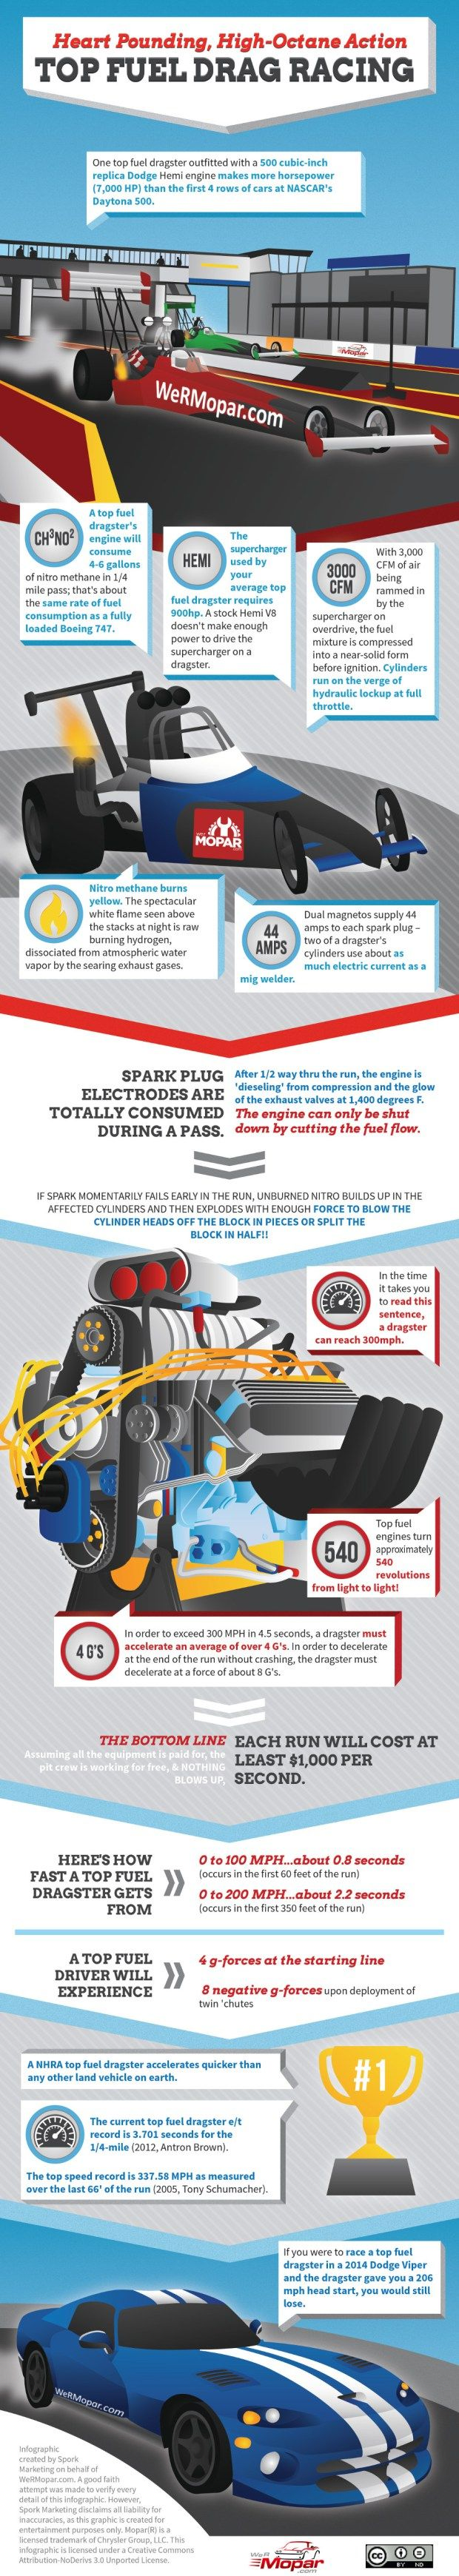 "Top Fuel Drag Racing - Love the last block of this infographic - ""If you were to race a top fuel dragster in a 2014 Dodge Viper and the dragster gave you a 206 mph head start, you would still lose!"""